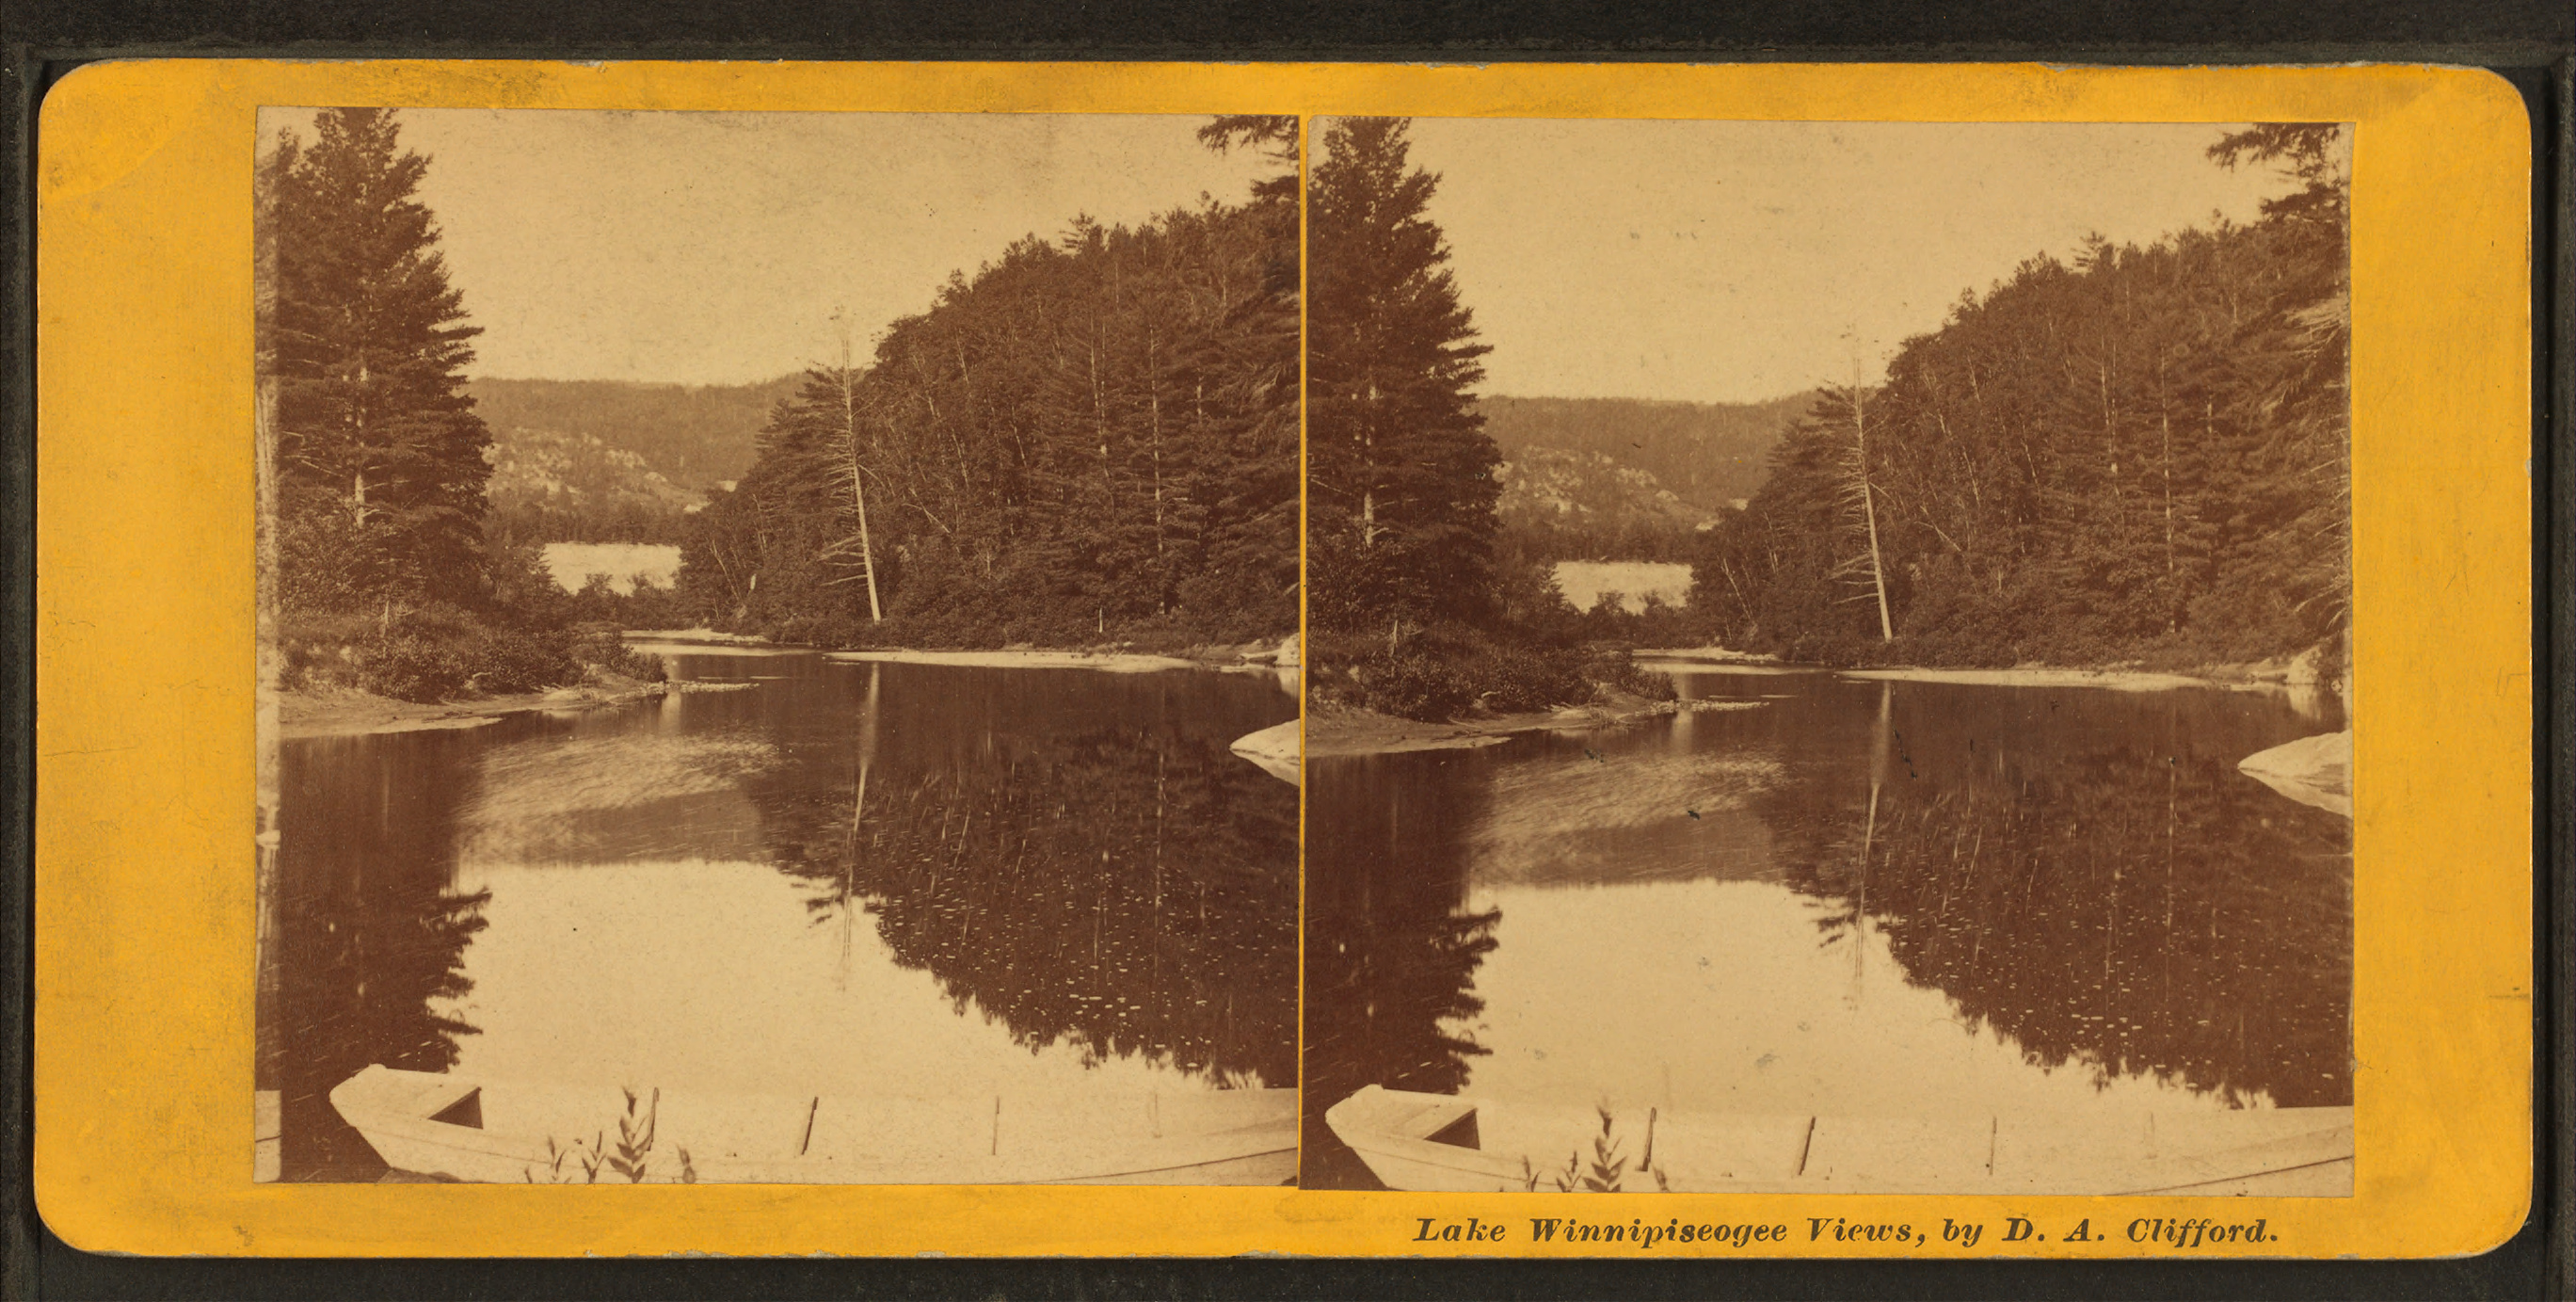 A Stereoscopic Image.